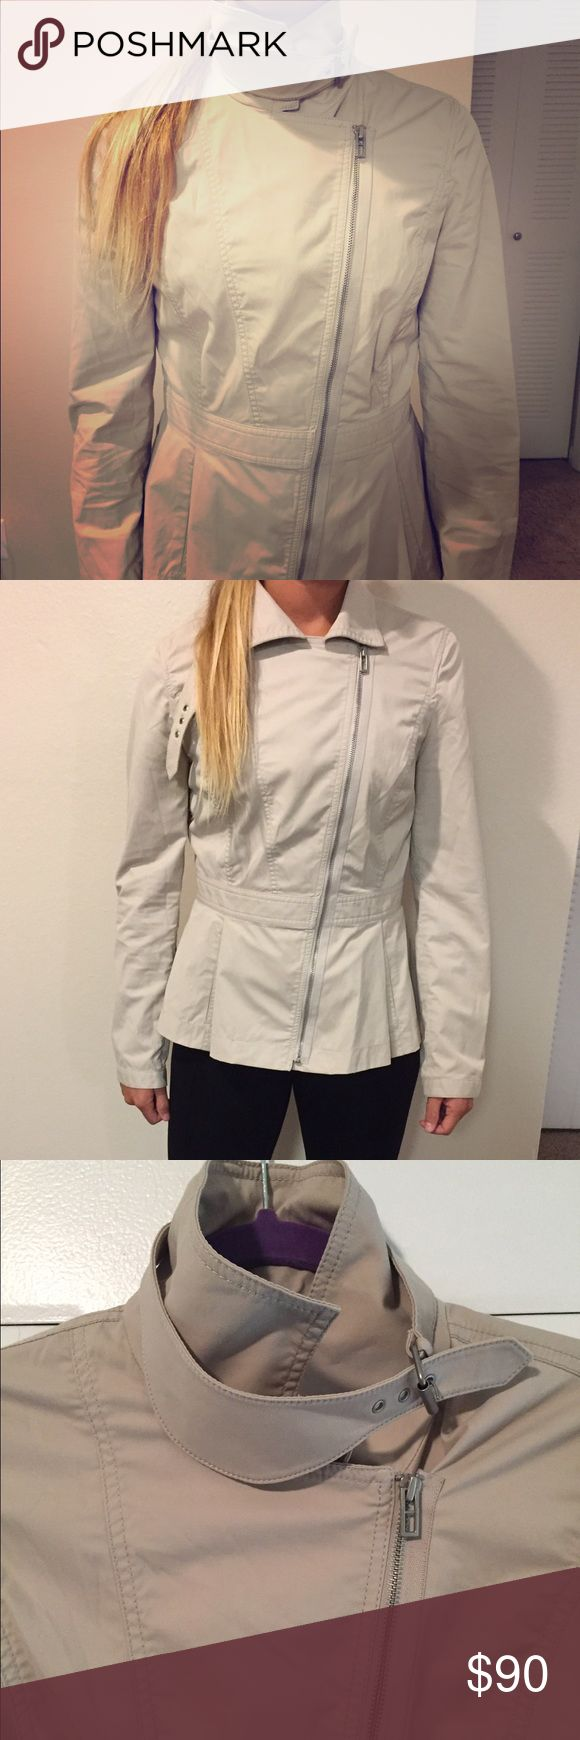 Armani Exchange jacket Light weight beige jacket. Hardly ever worn. Such a nice shape with the pleats. Zipper works perfectly. The neck line has such a high fashion look. Perfect with jeans or leggings, heels or boots! Armani Exchange Jackets & Coats